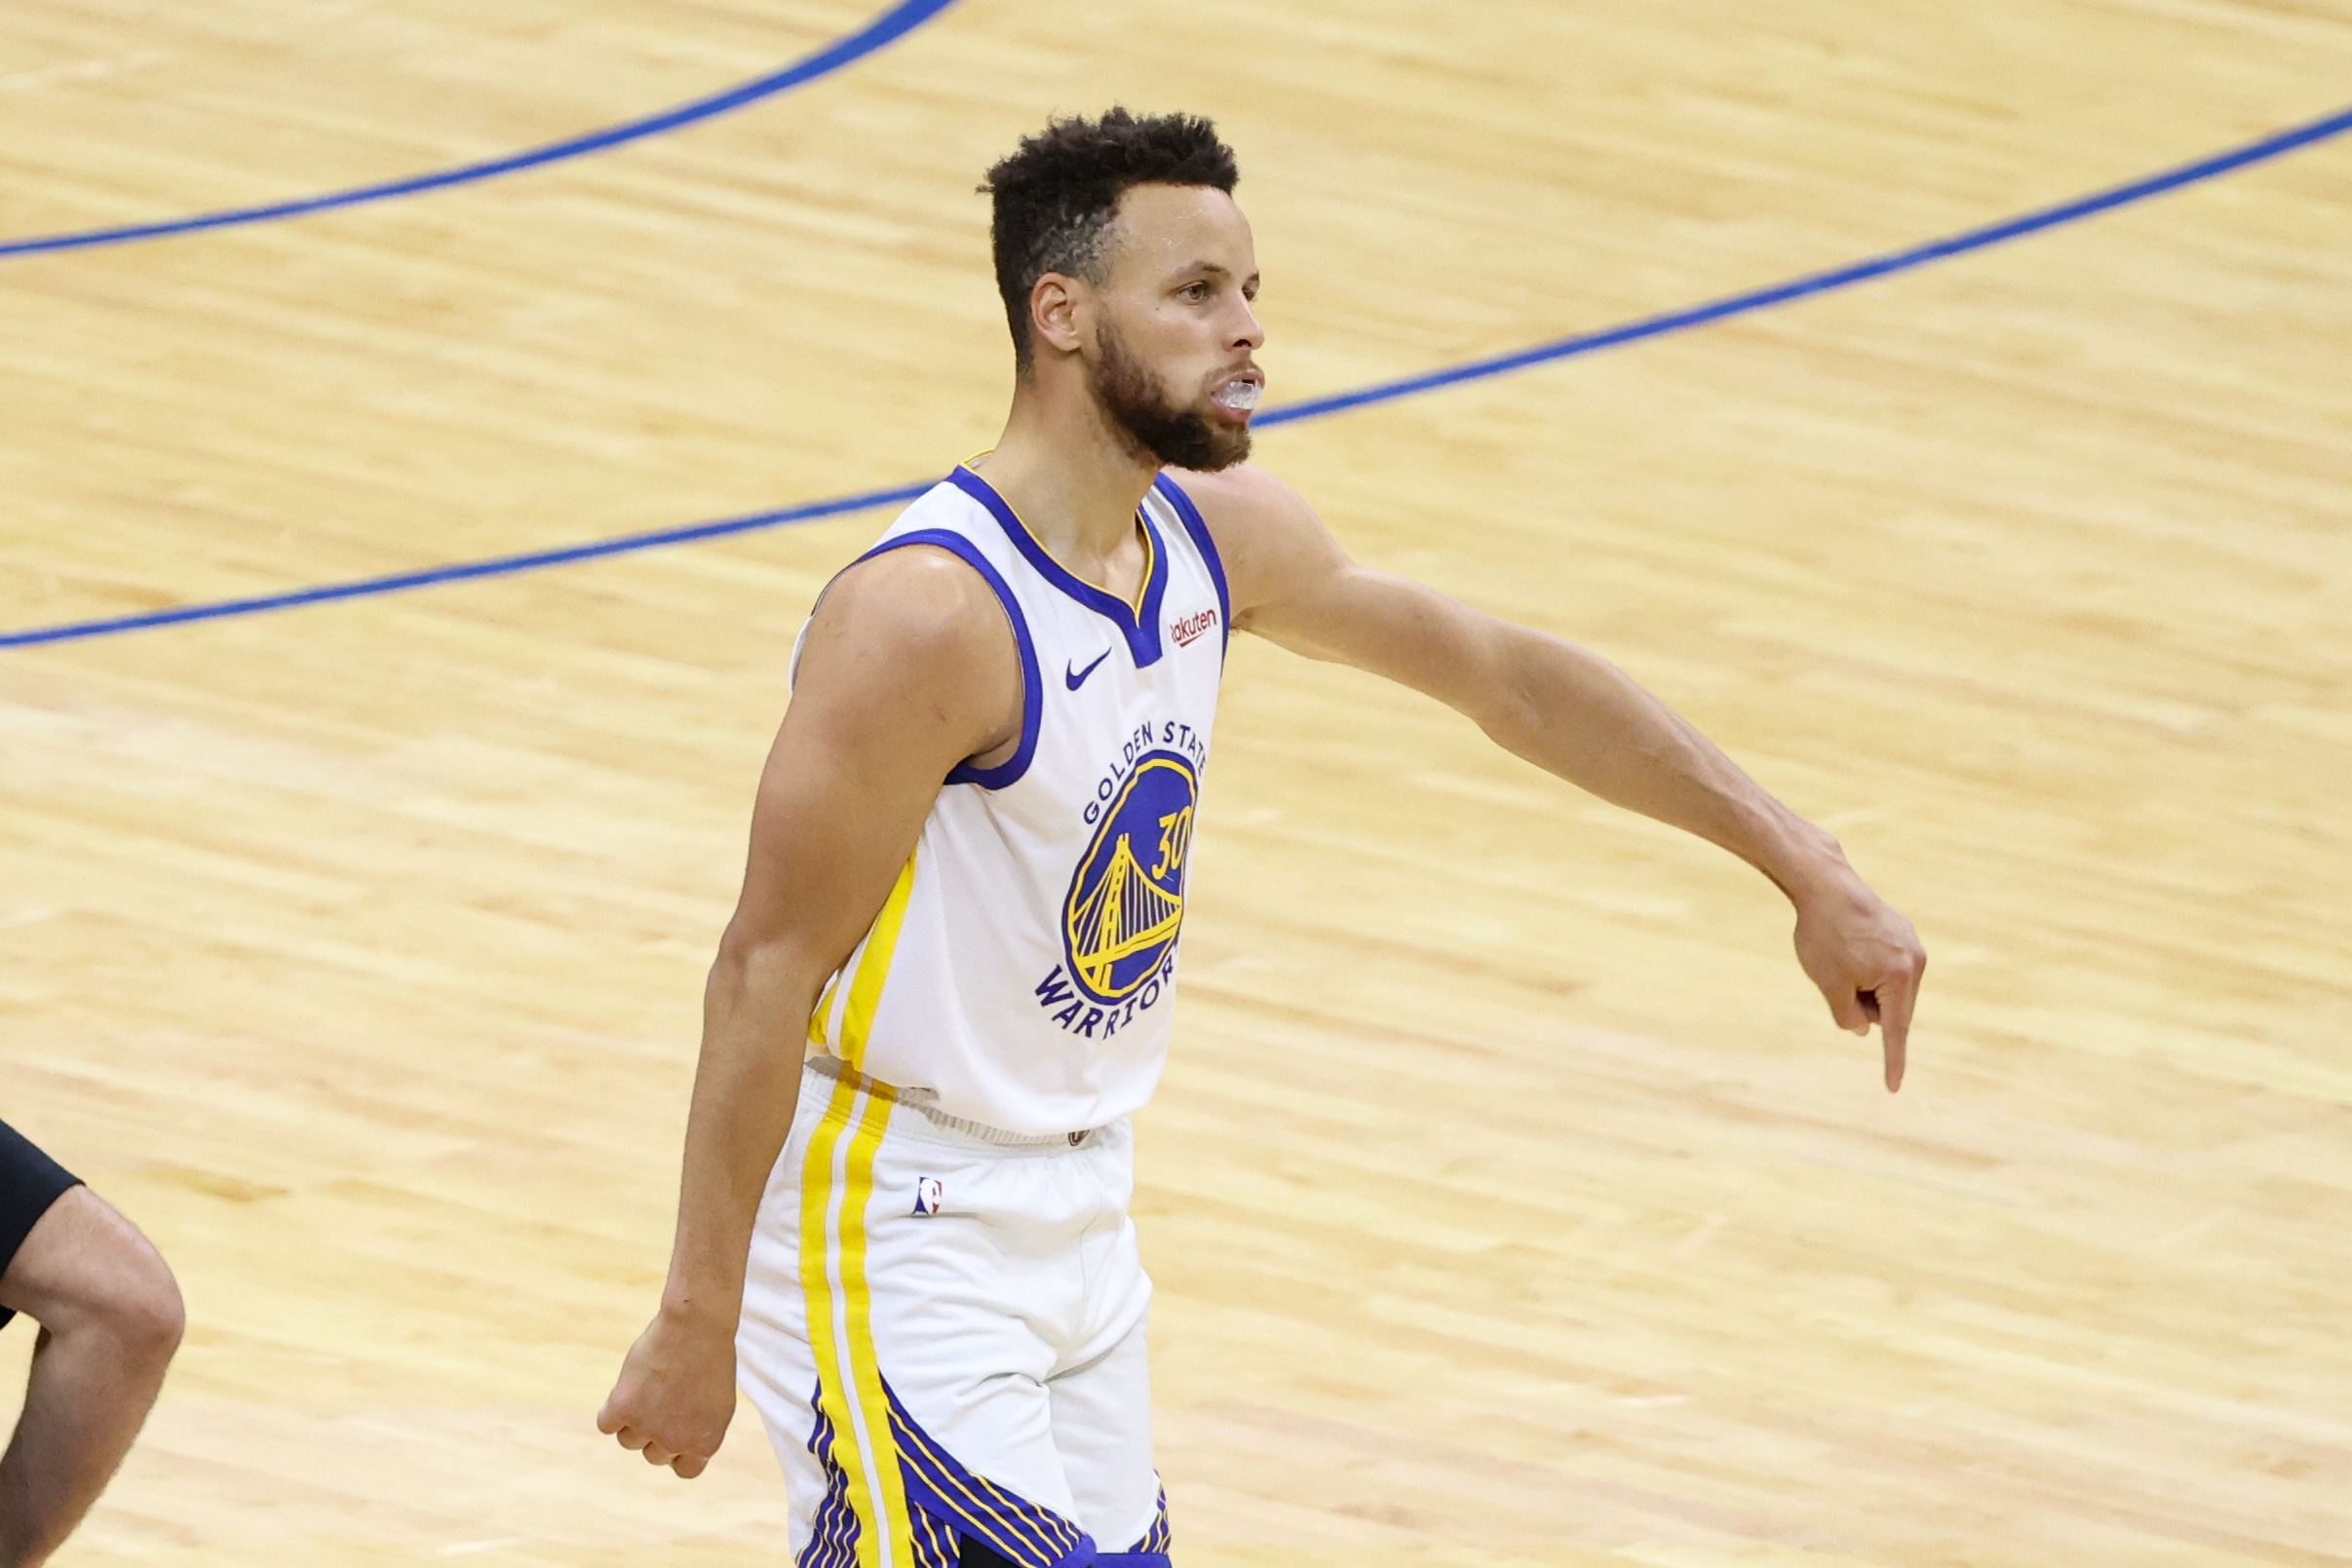 Golden State Warriors guard Stephen Curry reacts after his score against the Philadelphia 76ers during the second quarter at Wells Fargo Center.